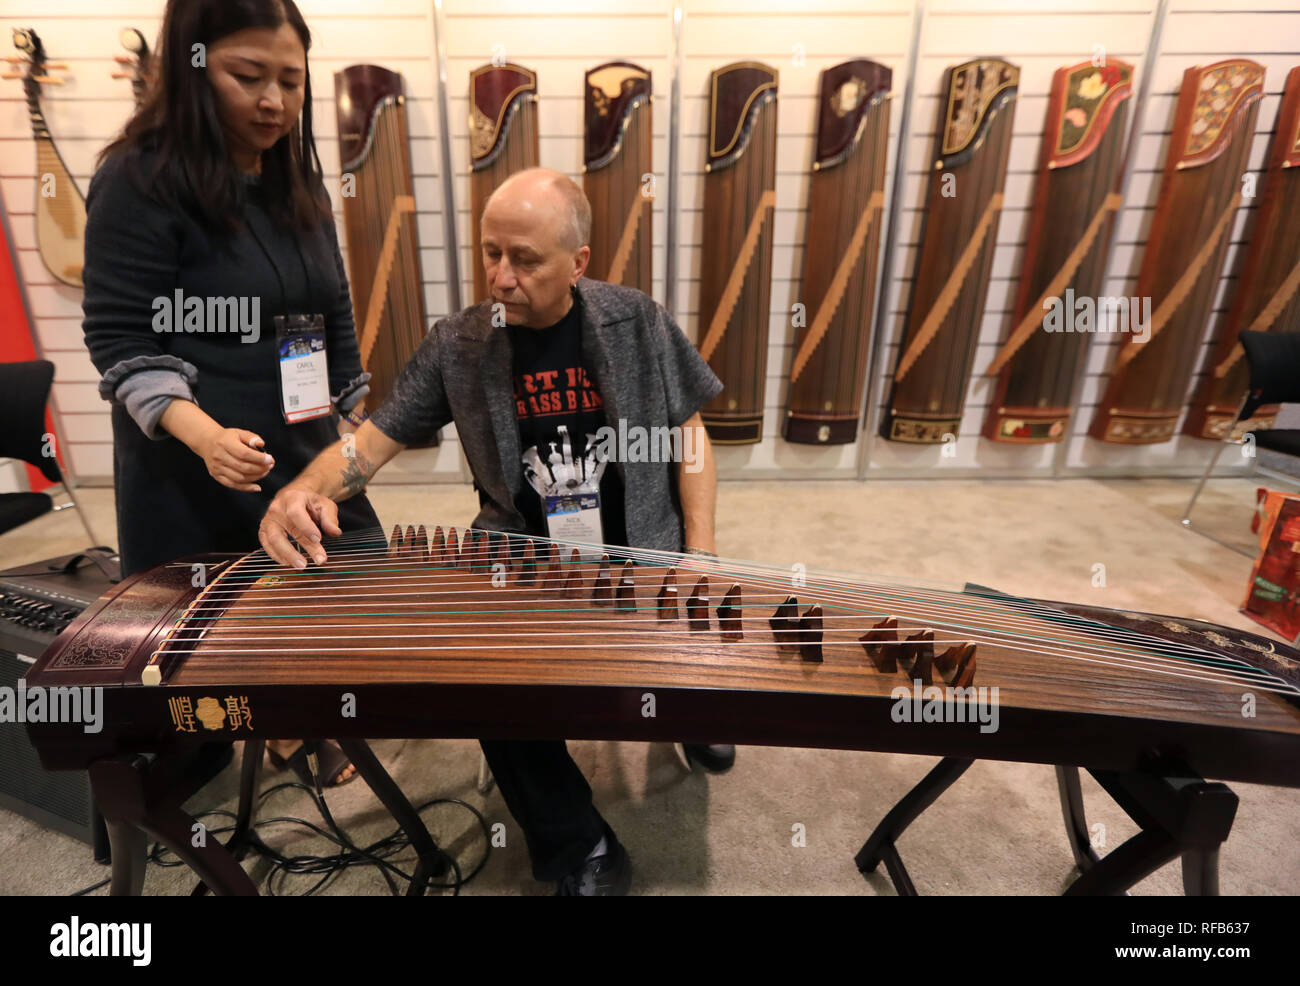 Anaheim, USA  24th Jan, 2019  A man learns to play Chinese